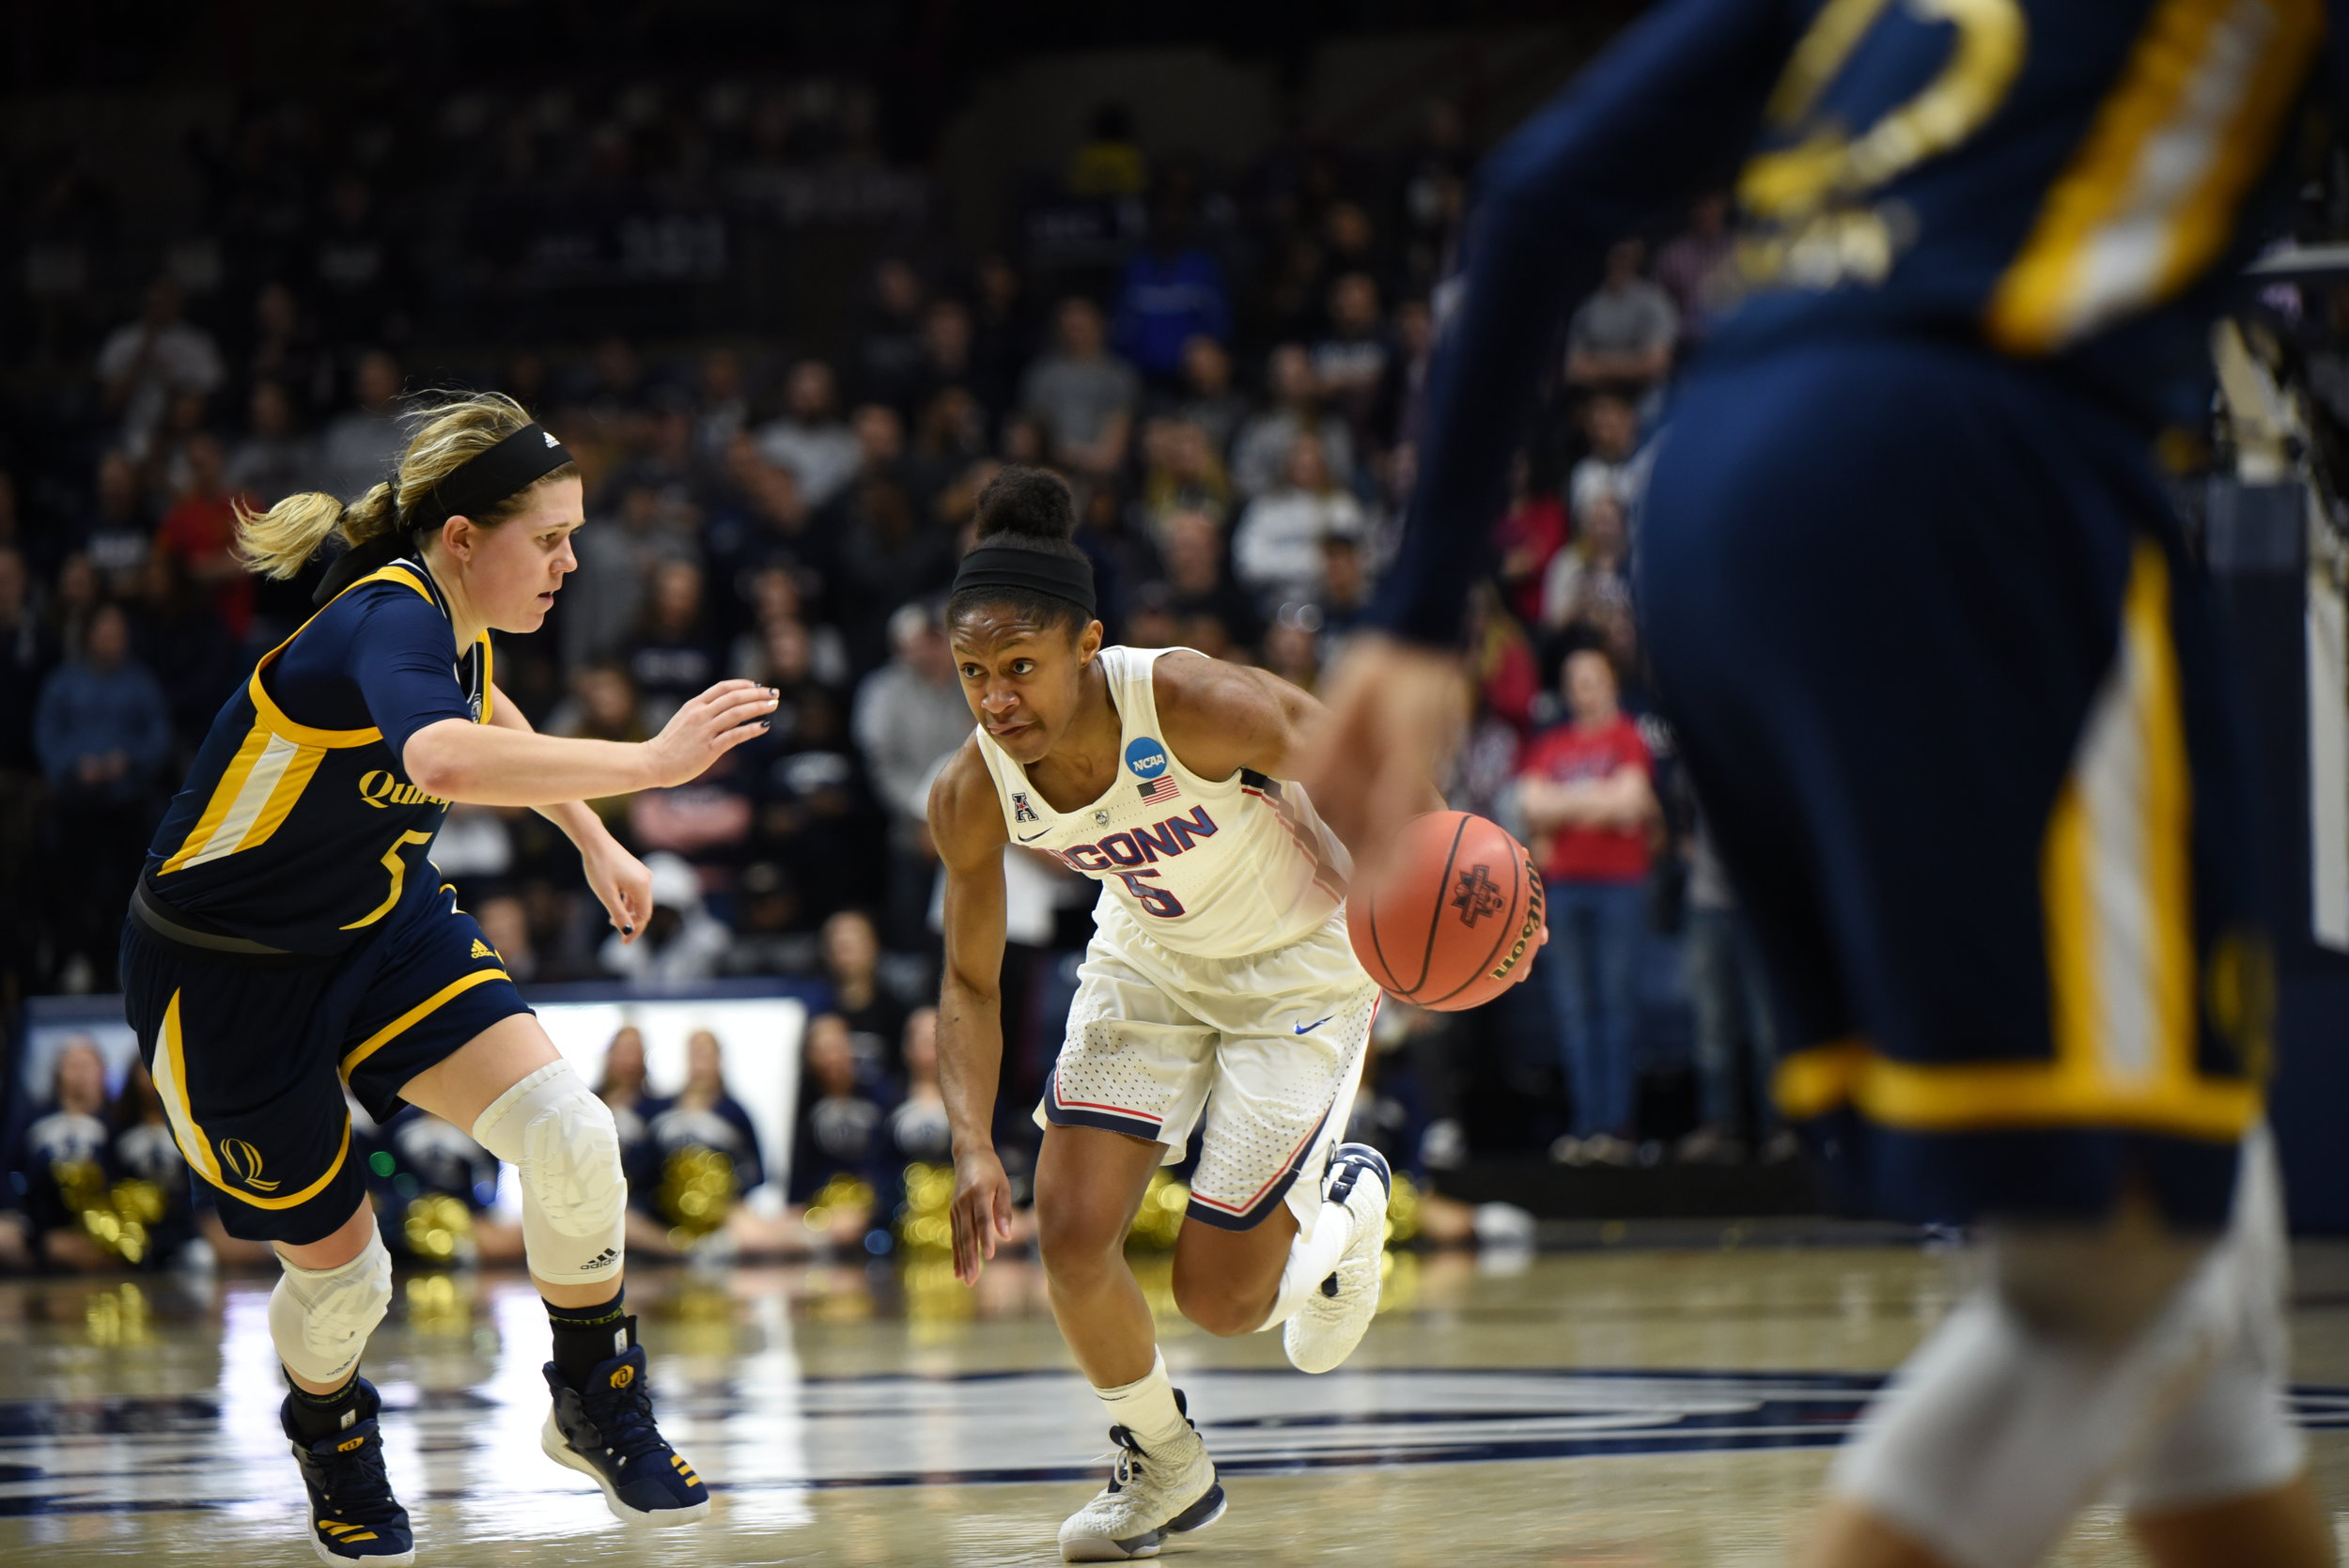 Crystal Dangerfield pushes the ball up the court. (Charlotte Lao/The Daily Campus)